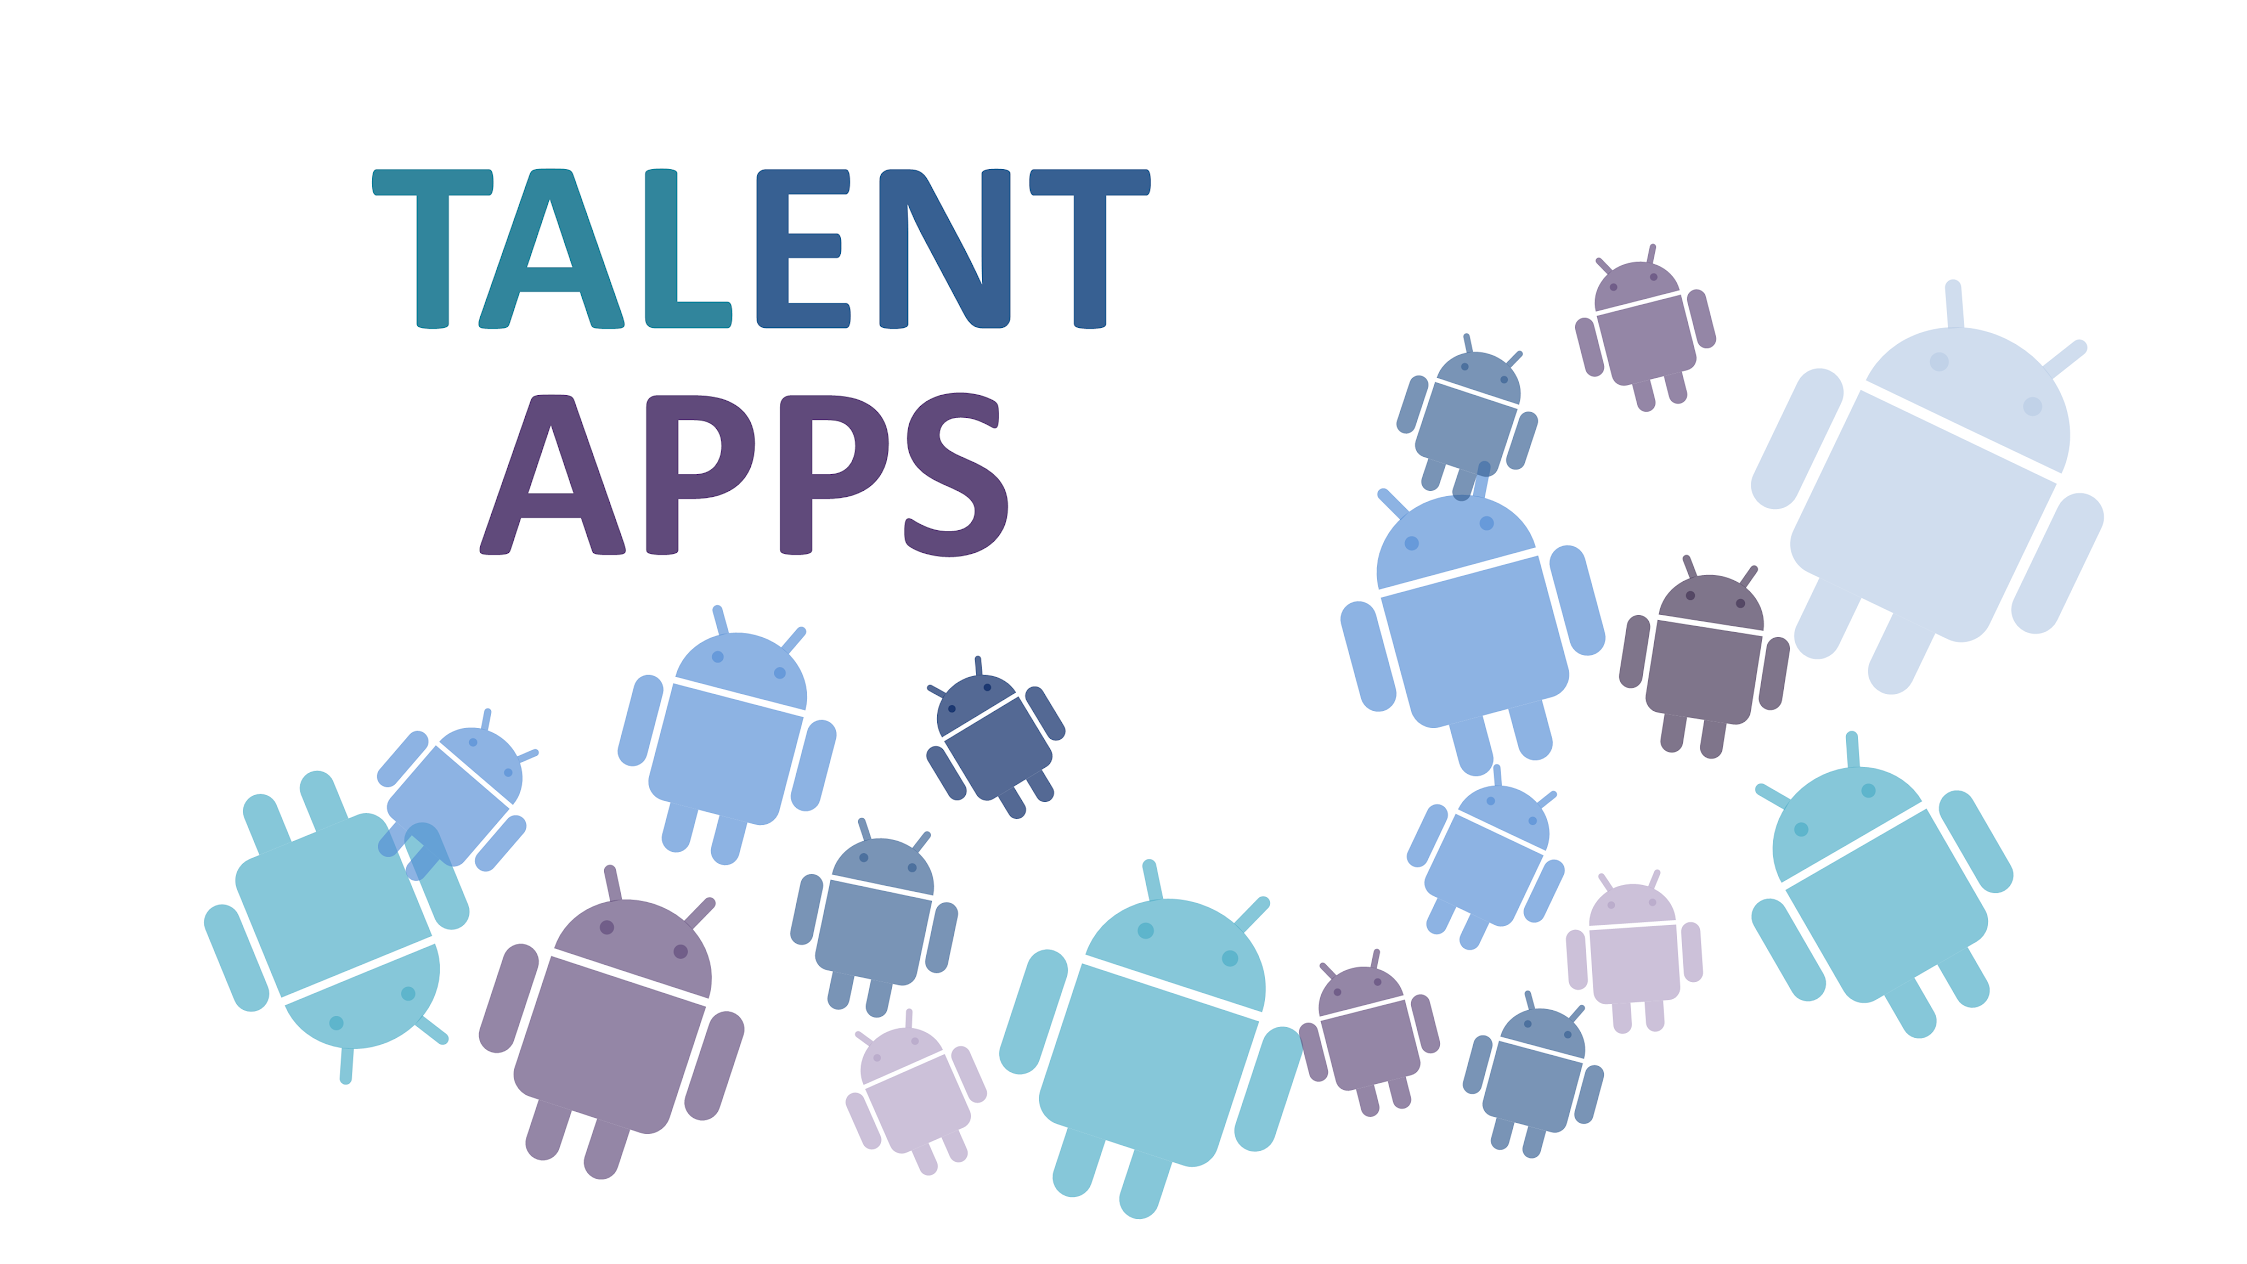 Talent Apps